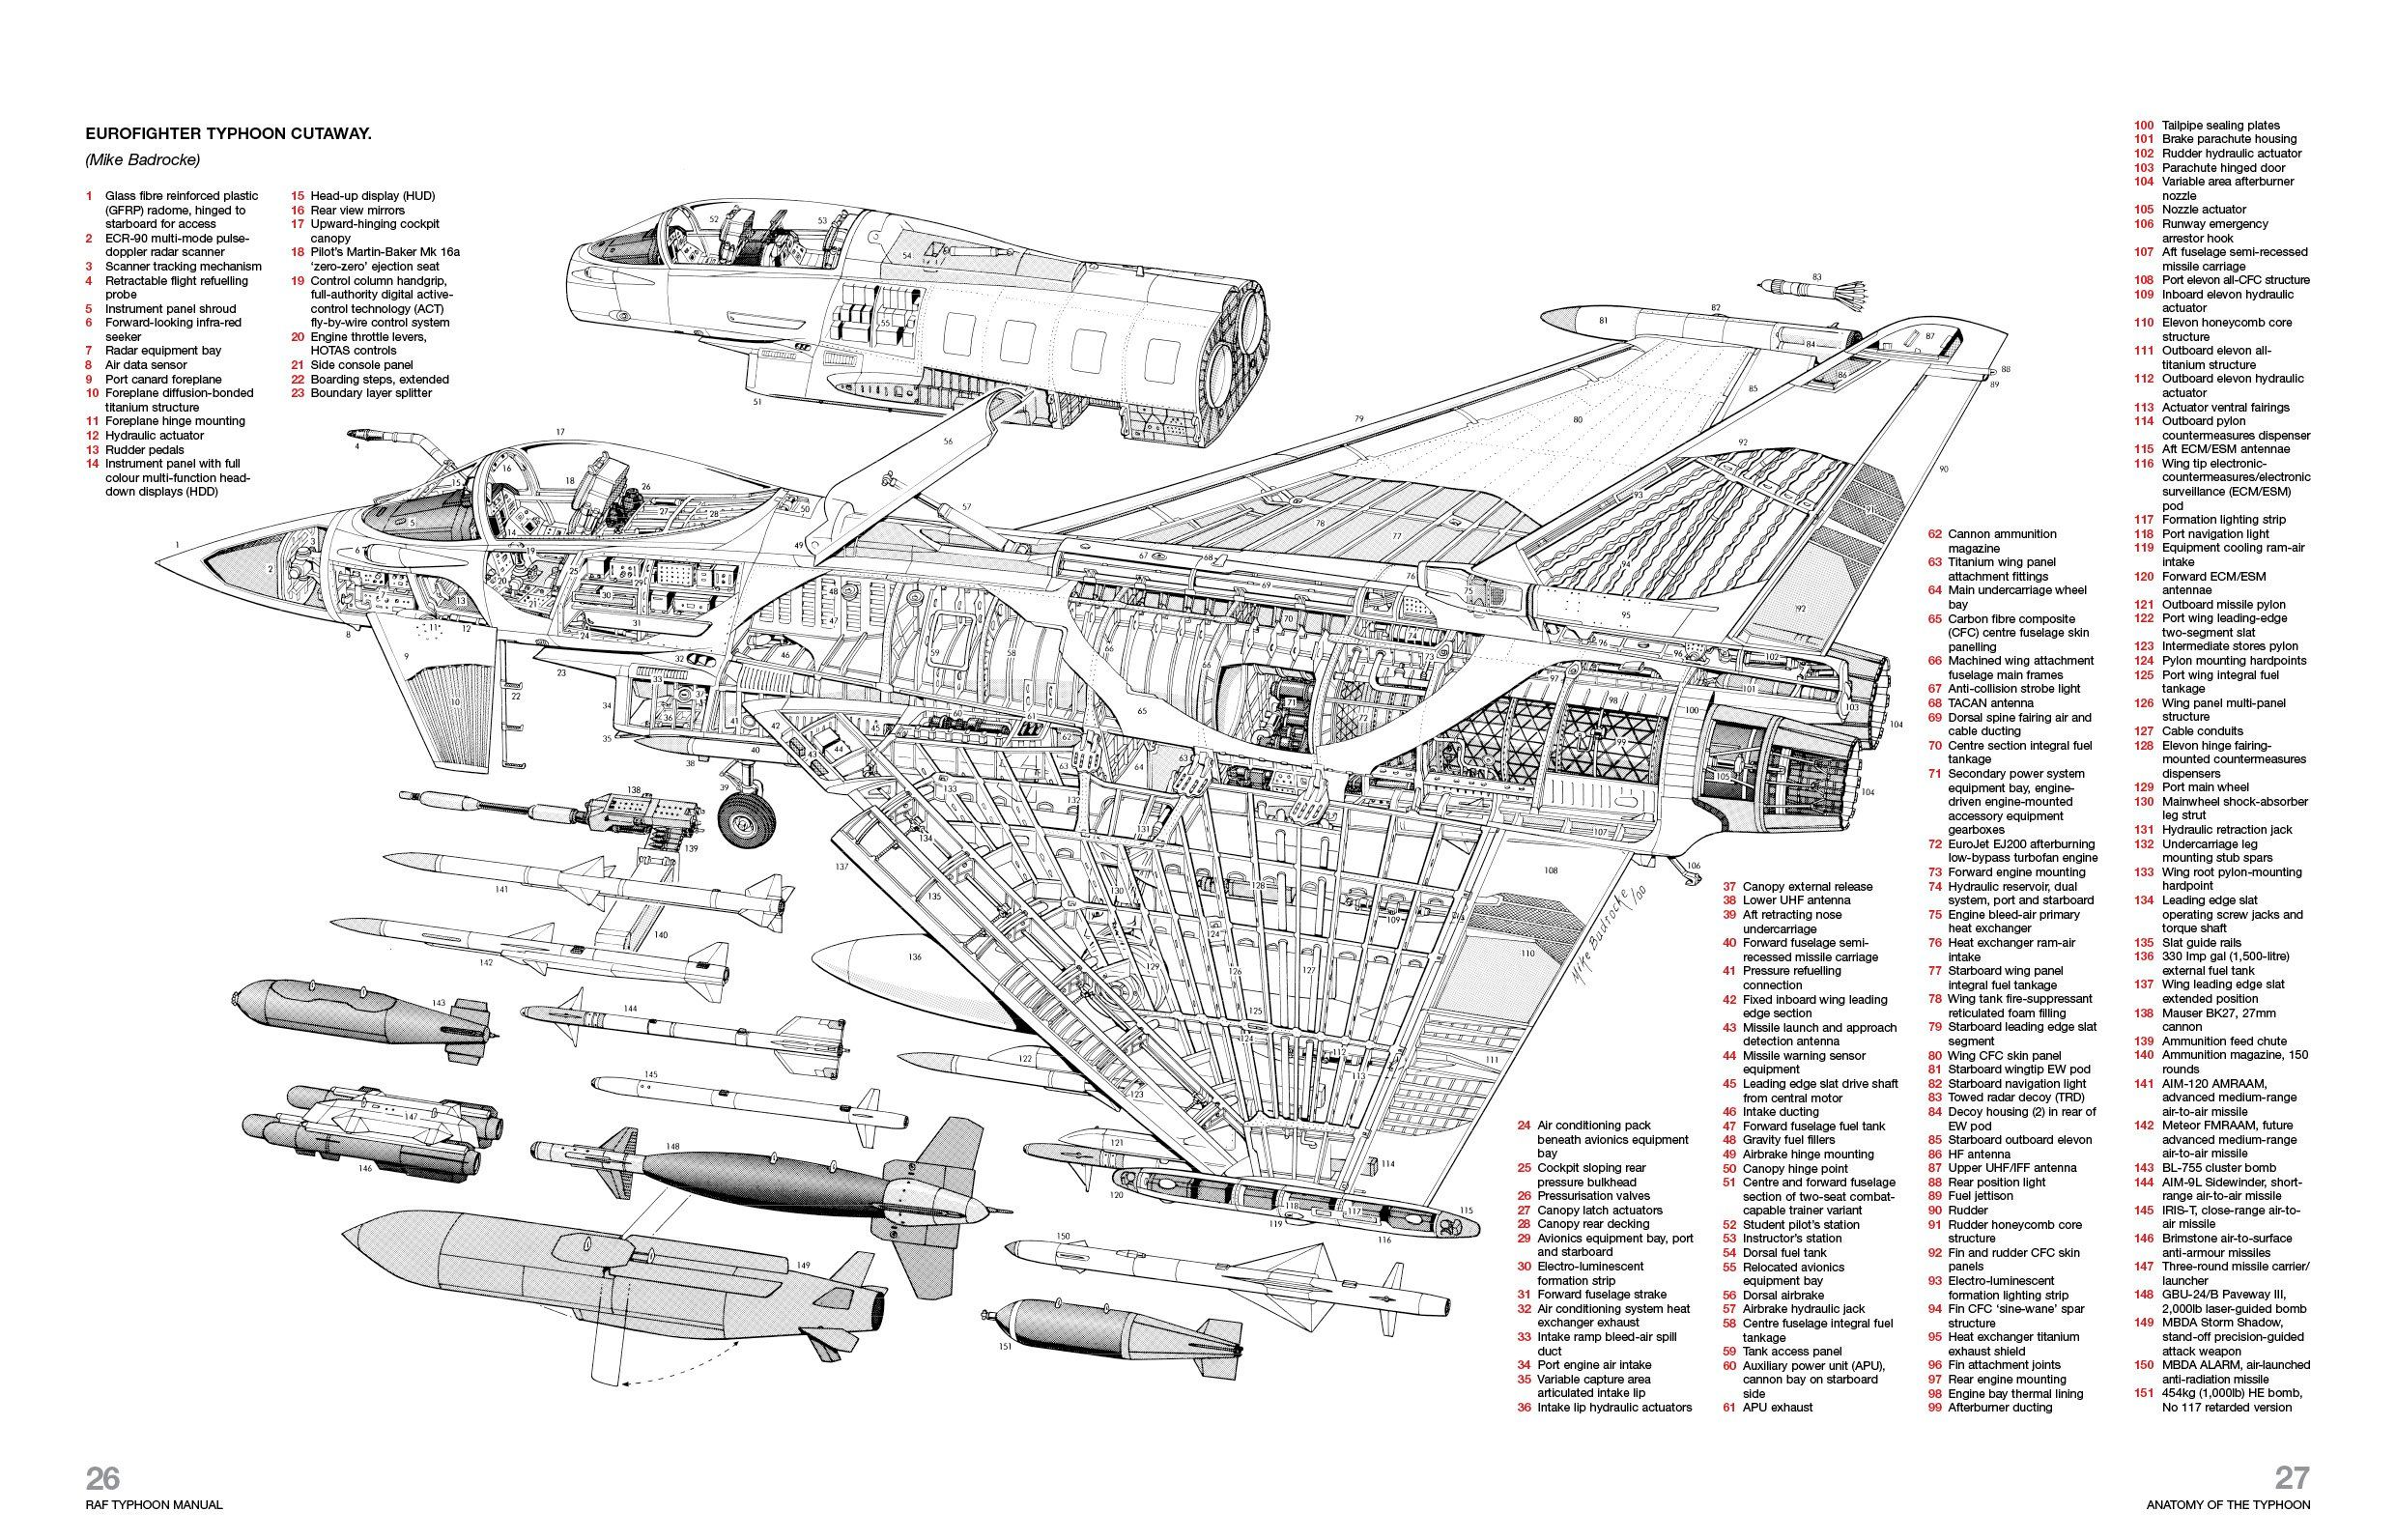 hight resolution of eurofighter typhoon cutaway military jets military aircraft aircraft design cutaway fighter jets